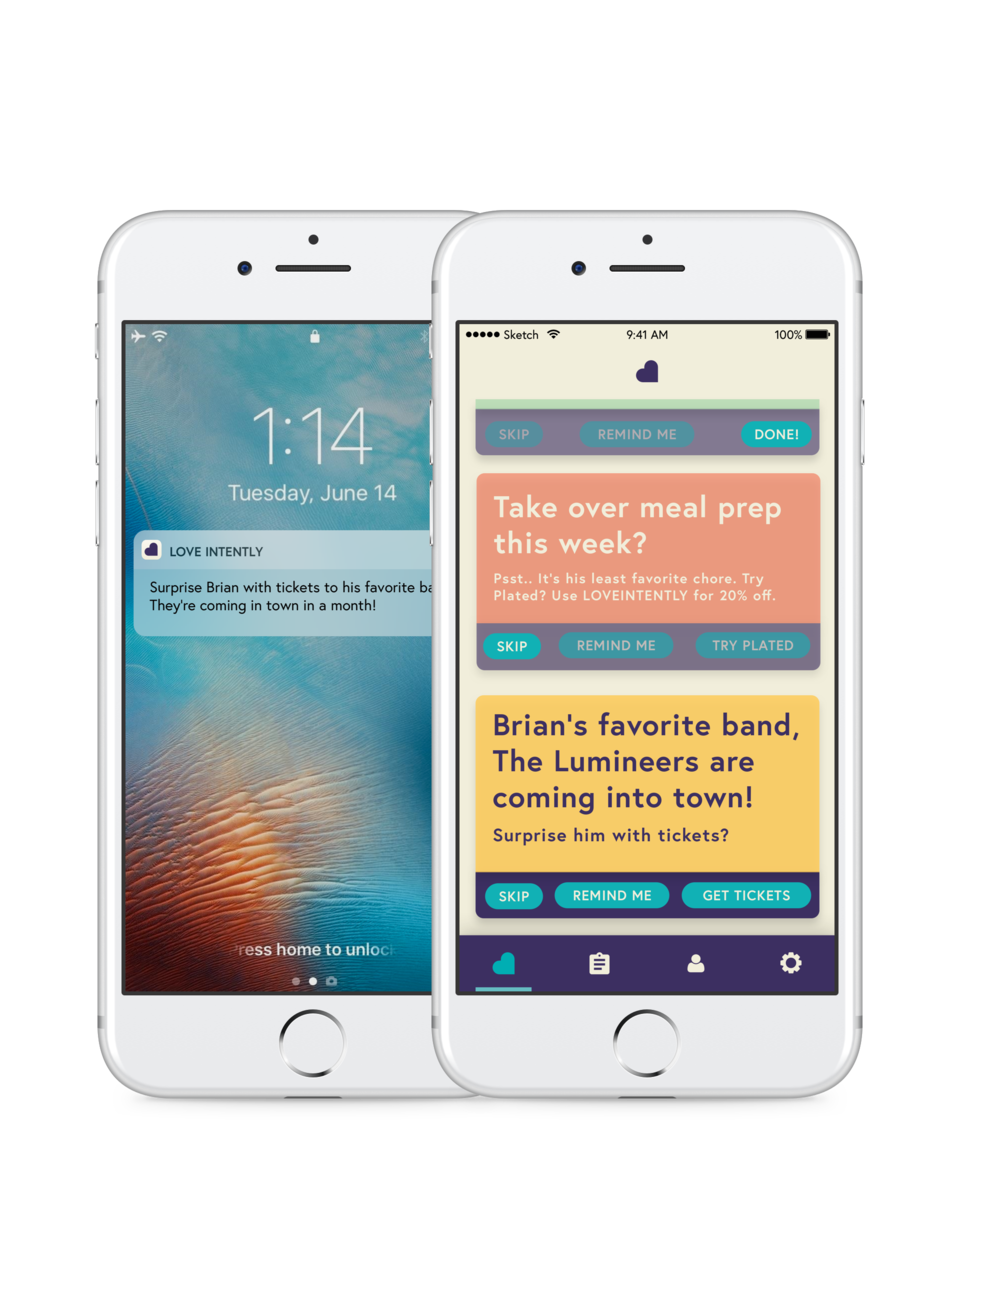 LoveTips + Notifications   Primarily, couples visit the LoveTips page for daily tips to empower their relationship. Here they are able to set reminders or skip the LoveTips.